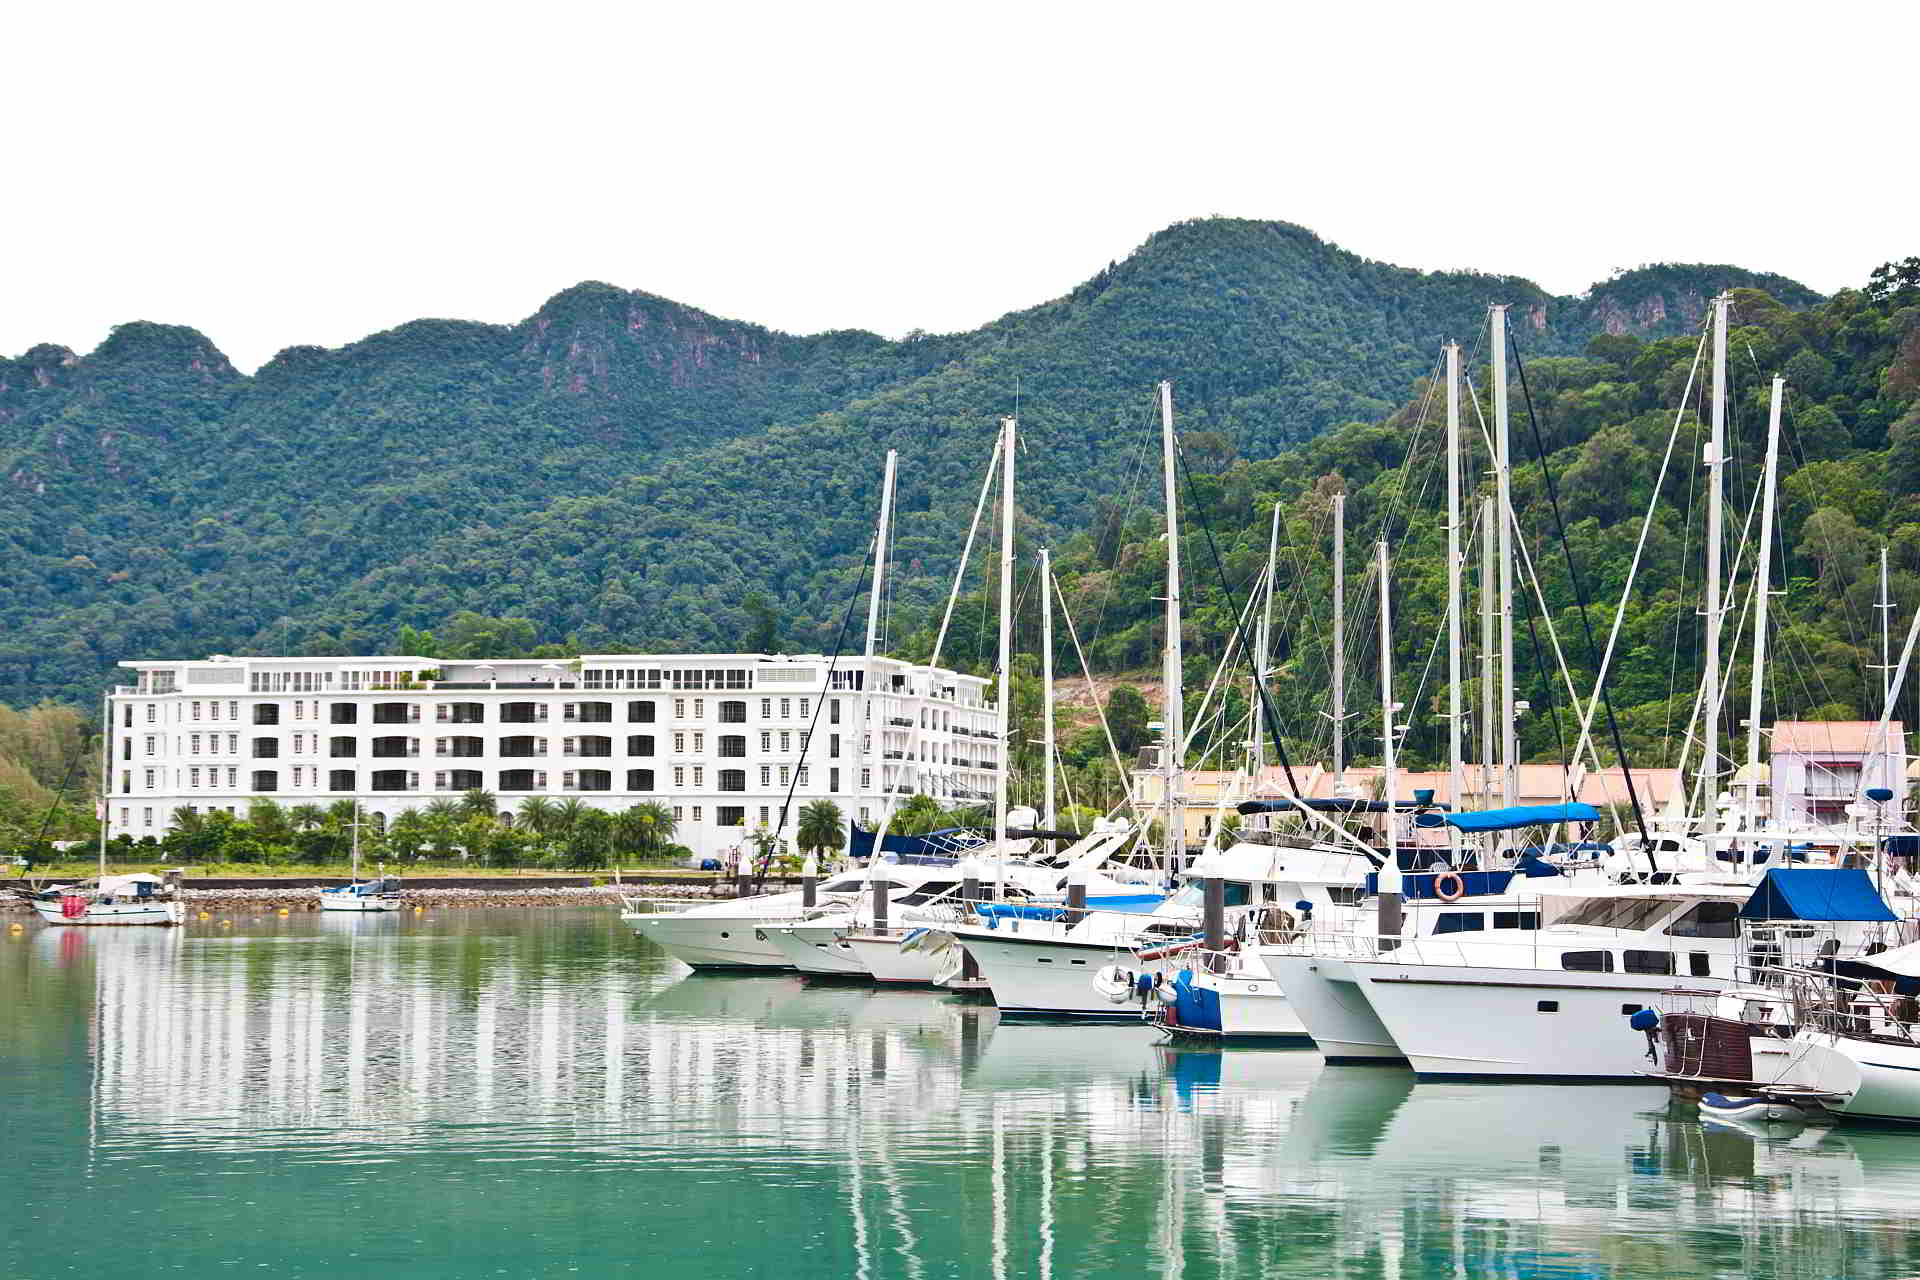 There are several considerations for choosing where to register a yacht under a flag of convenience